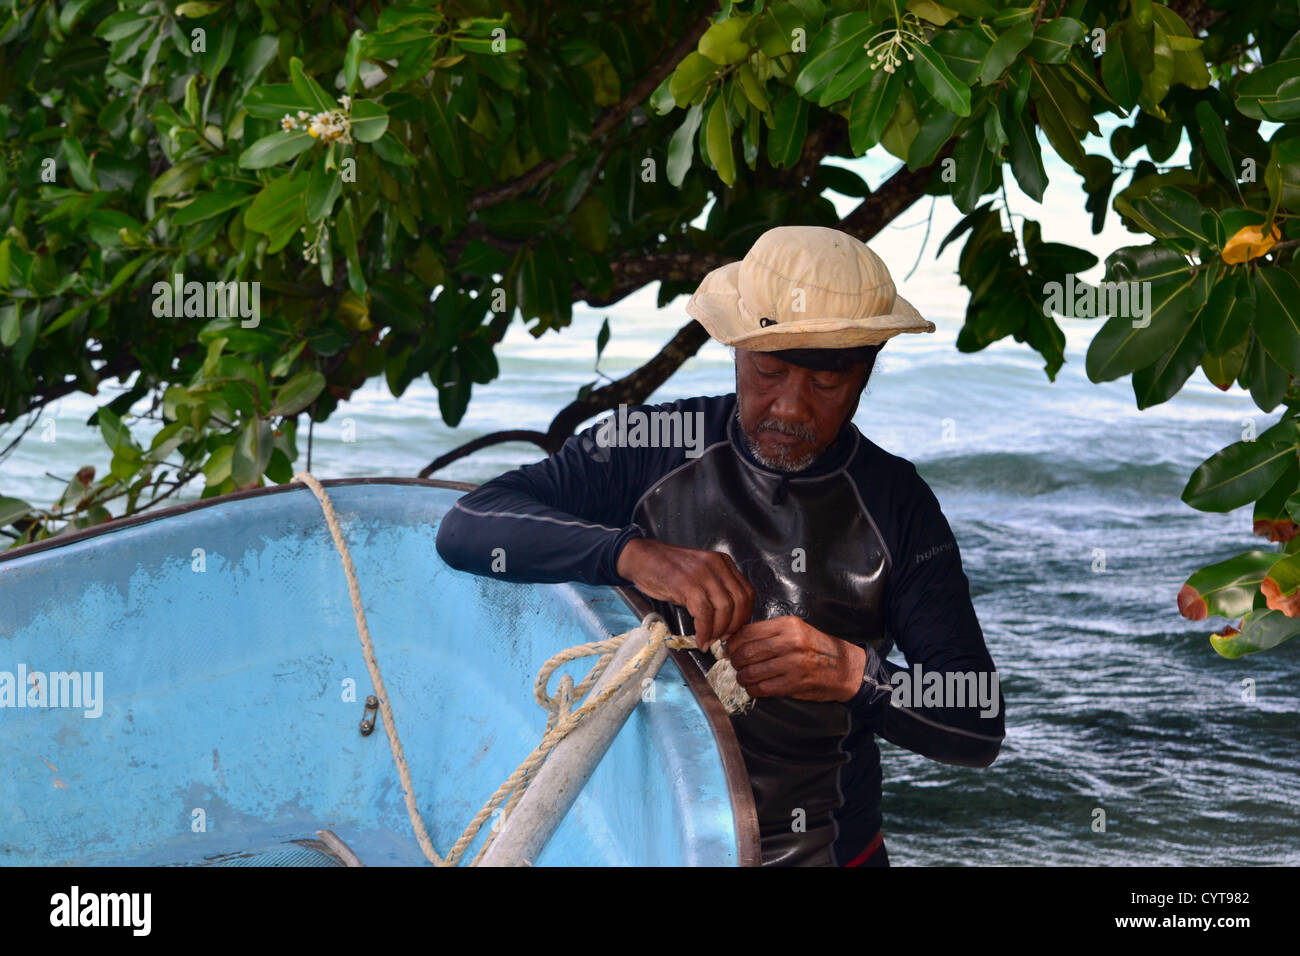 Micronesian old man ties his boat to a tree, Na Island, Madolenihmw Province, Pohnpei, Federated States of Micronesia - Stock Image